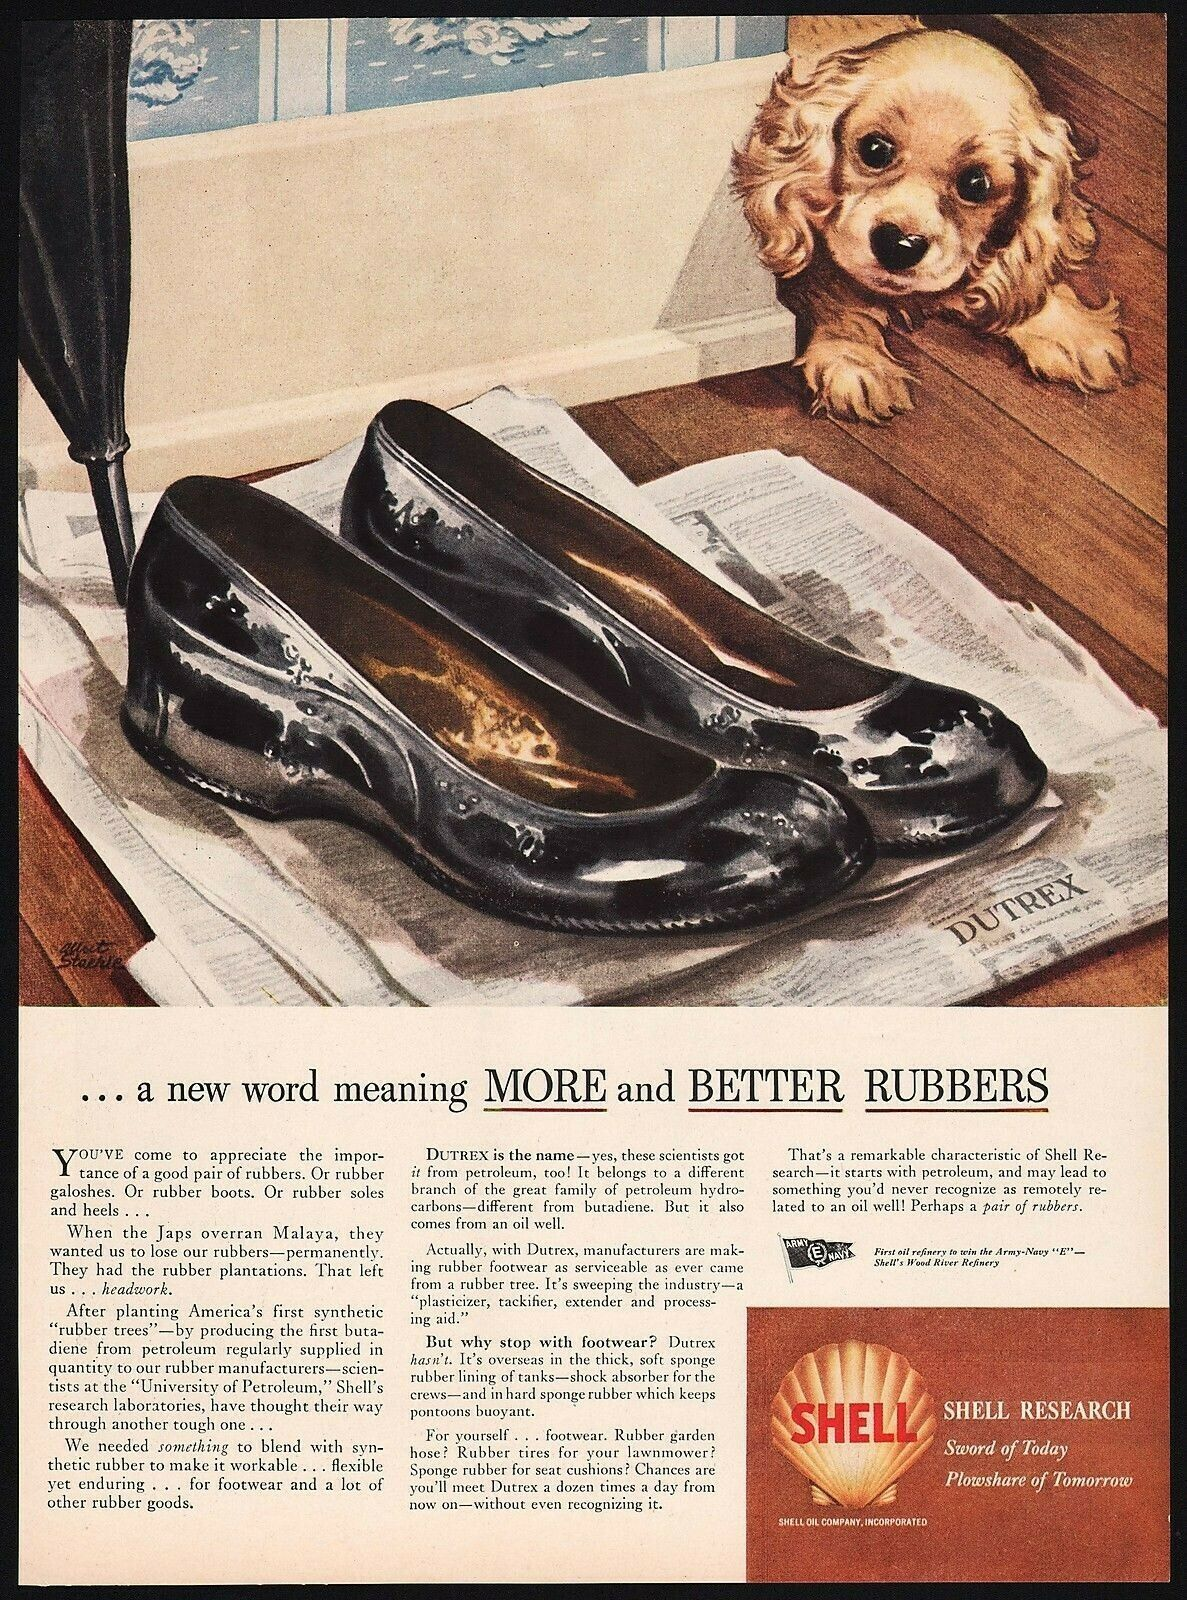 Vintage magazine ad SHELL gas oil from 1944 puppy pictured Albert Staehle art - $12.99